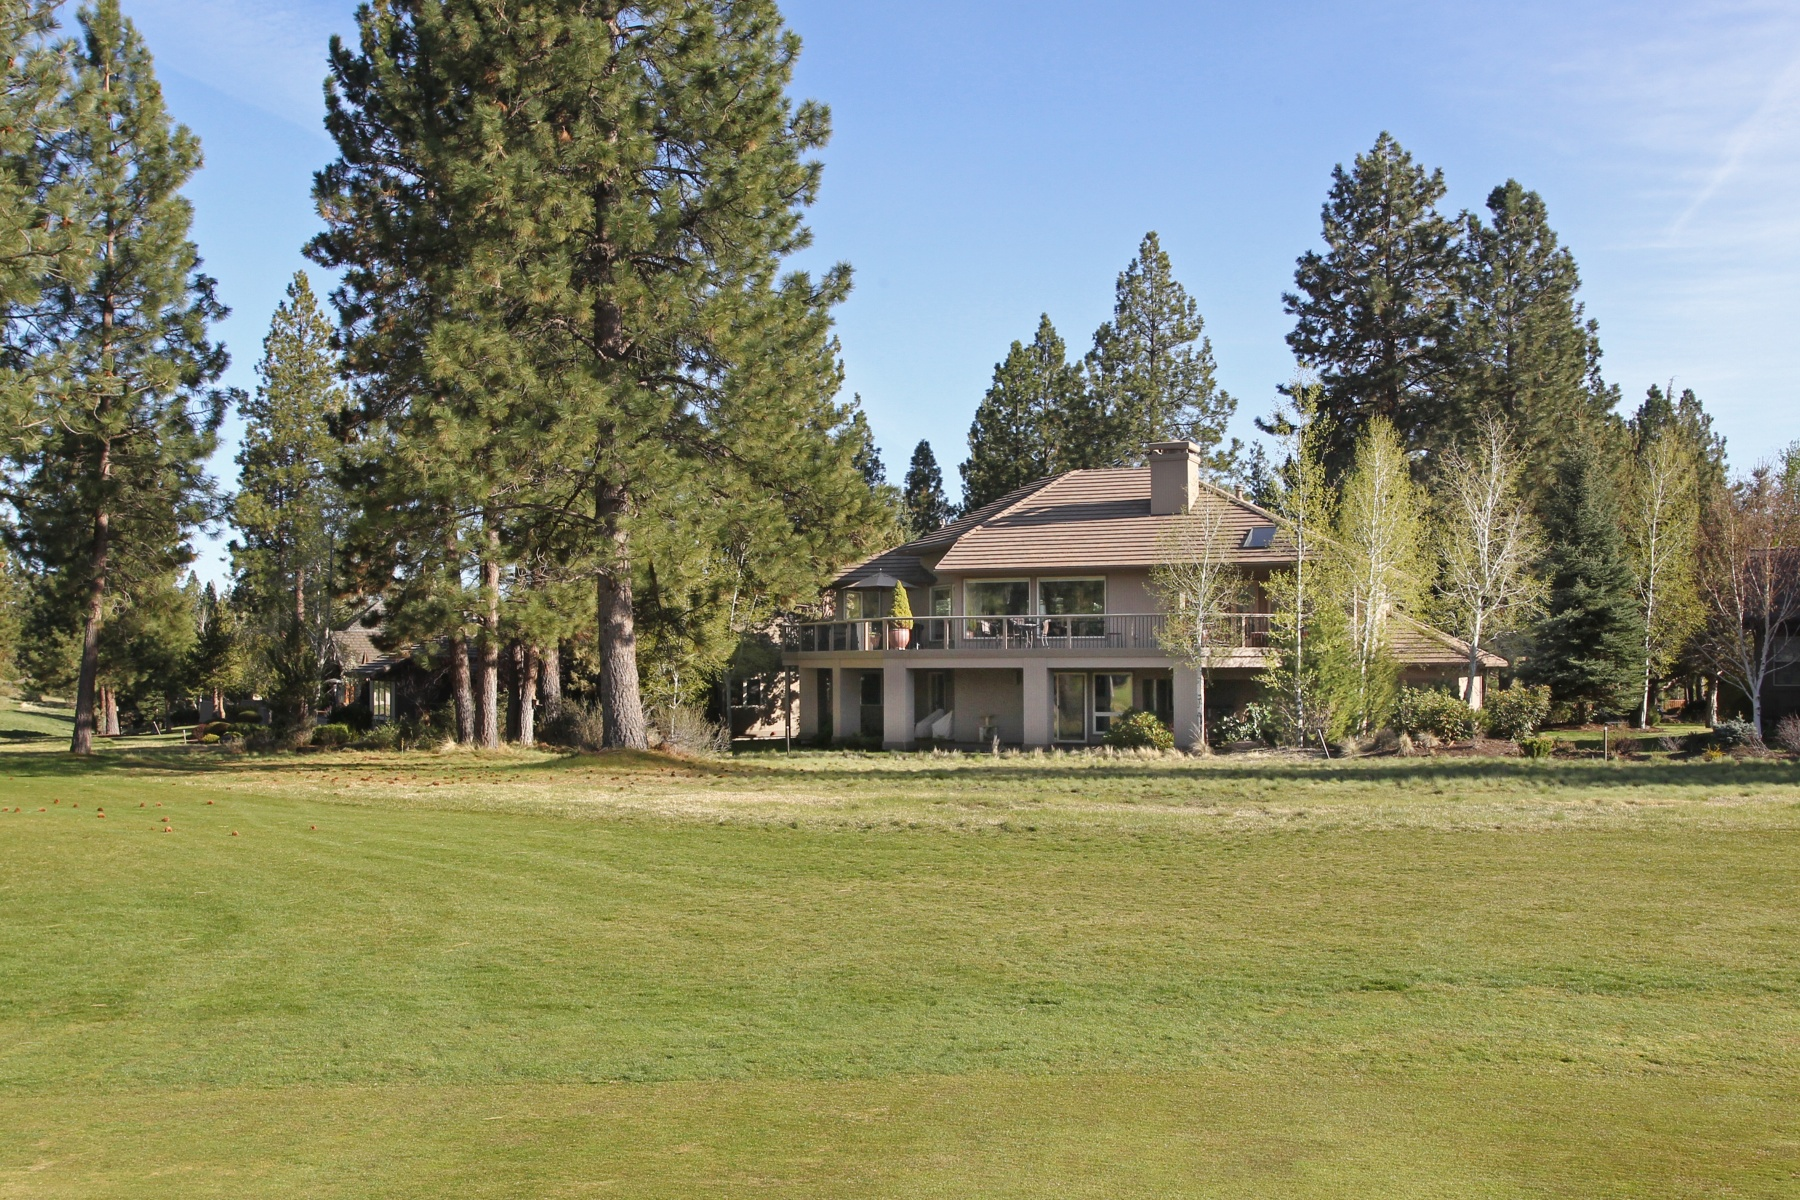 Single Family Home for Sale at Broken Top 19562 Green Lakes Loop Bend, Oregon 97702 United States